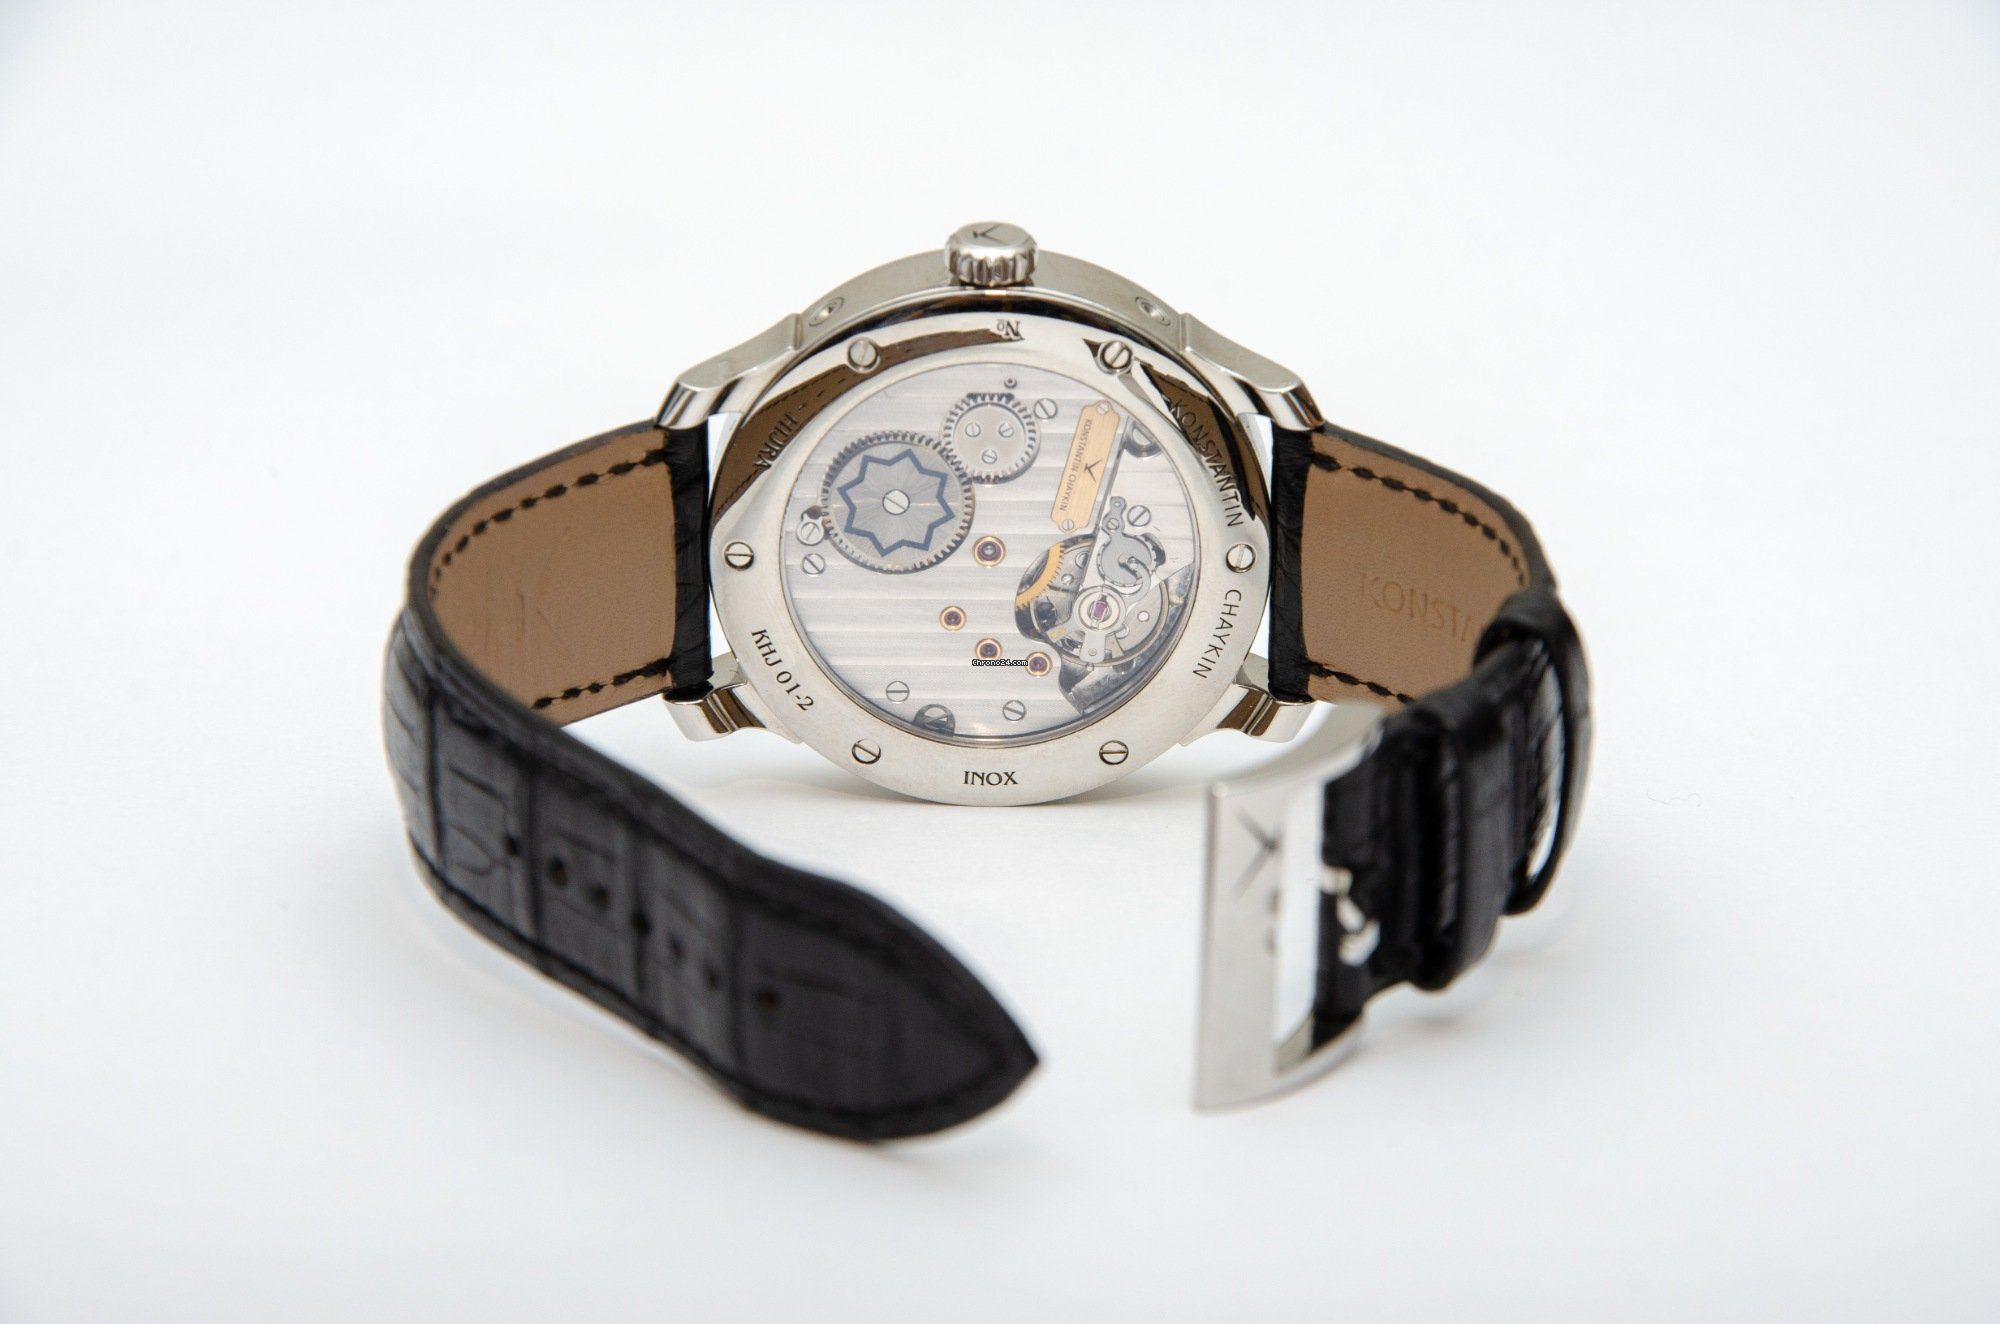 Konstantin Chaykin Hijra for $14,685 for sale from a Seller